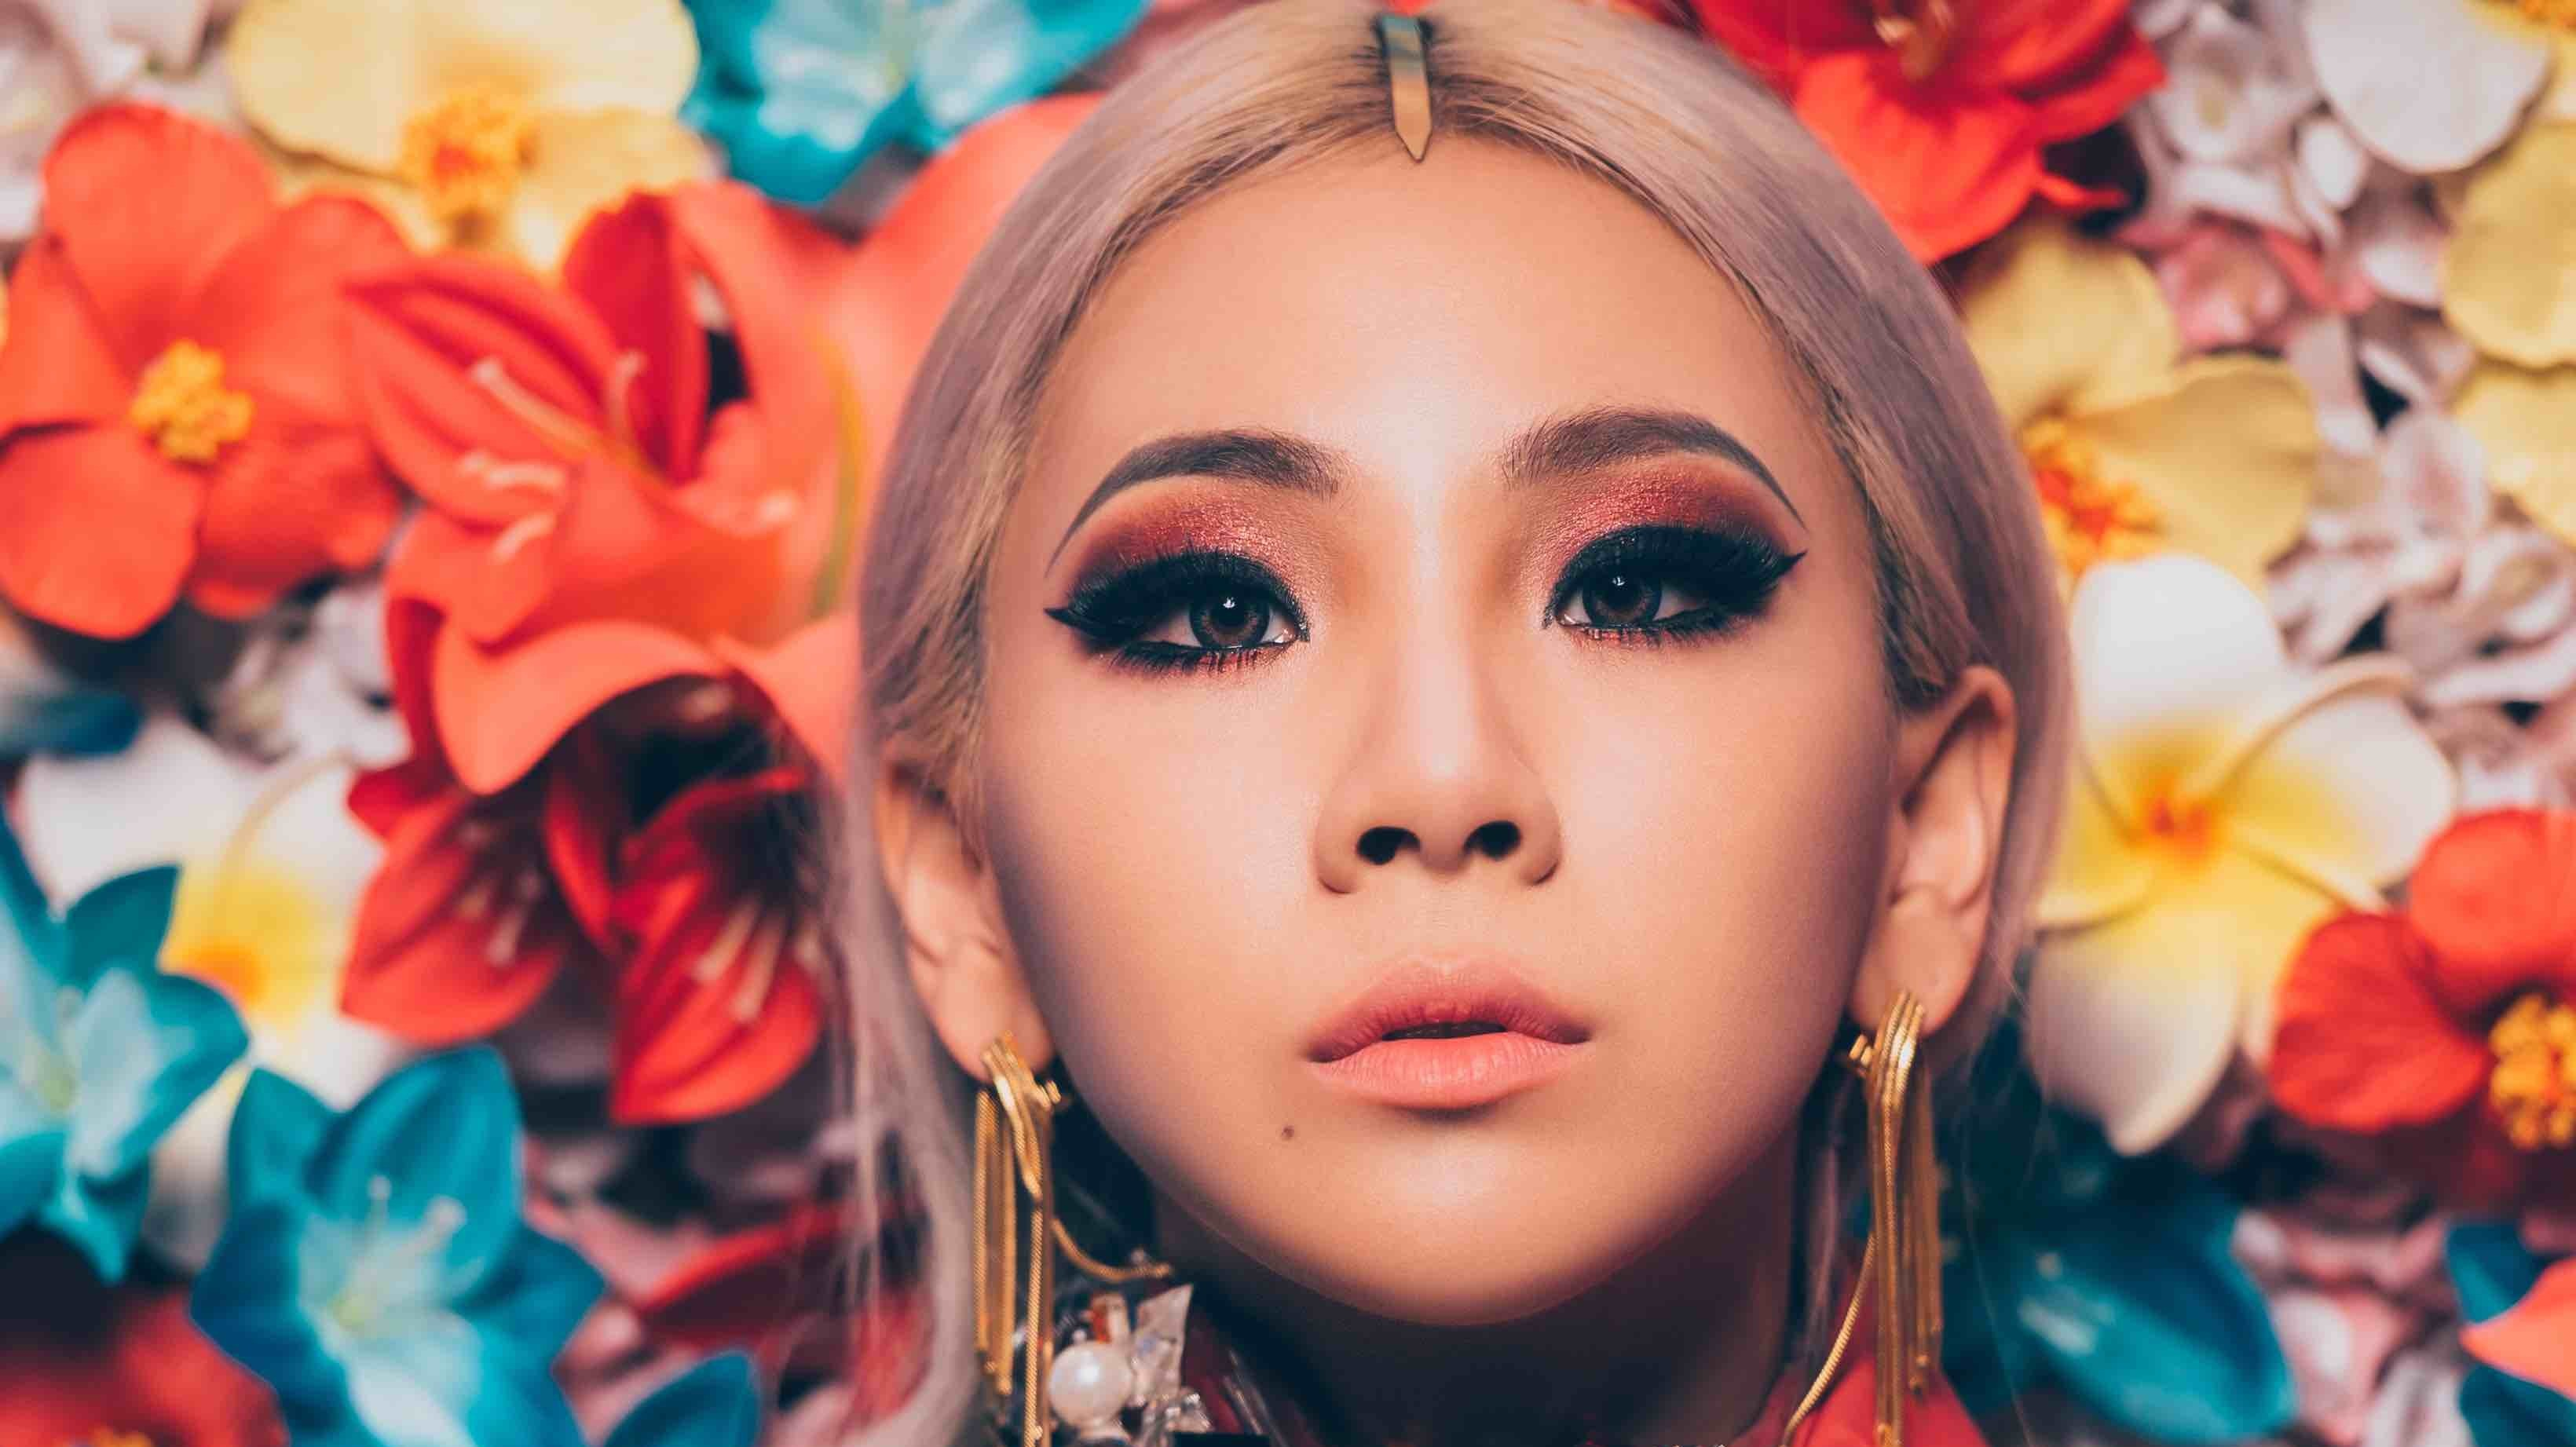 CL dishes on 'hello bitches' and her new badass style